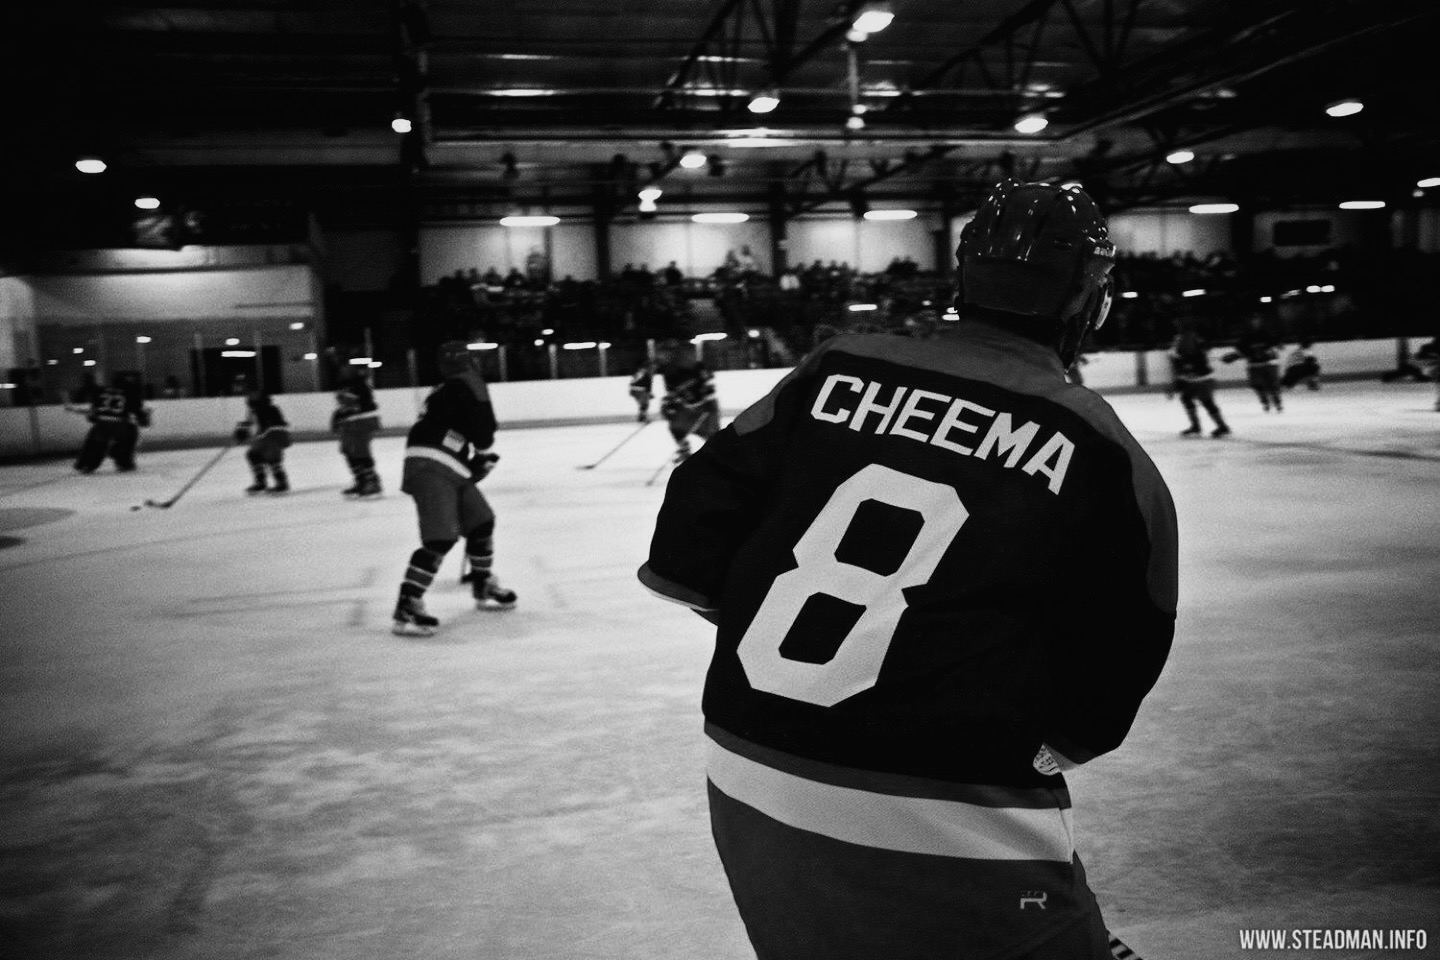 Sam Cheema - Hockey Invicta Dynamos